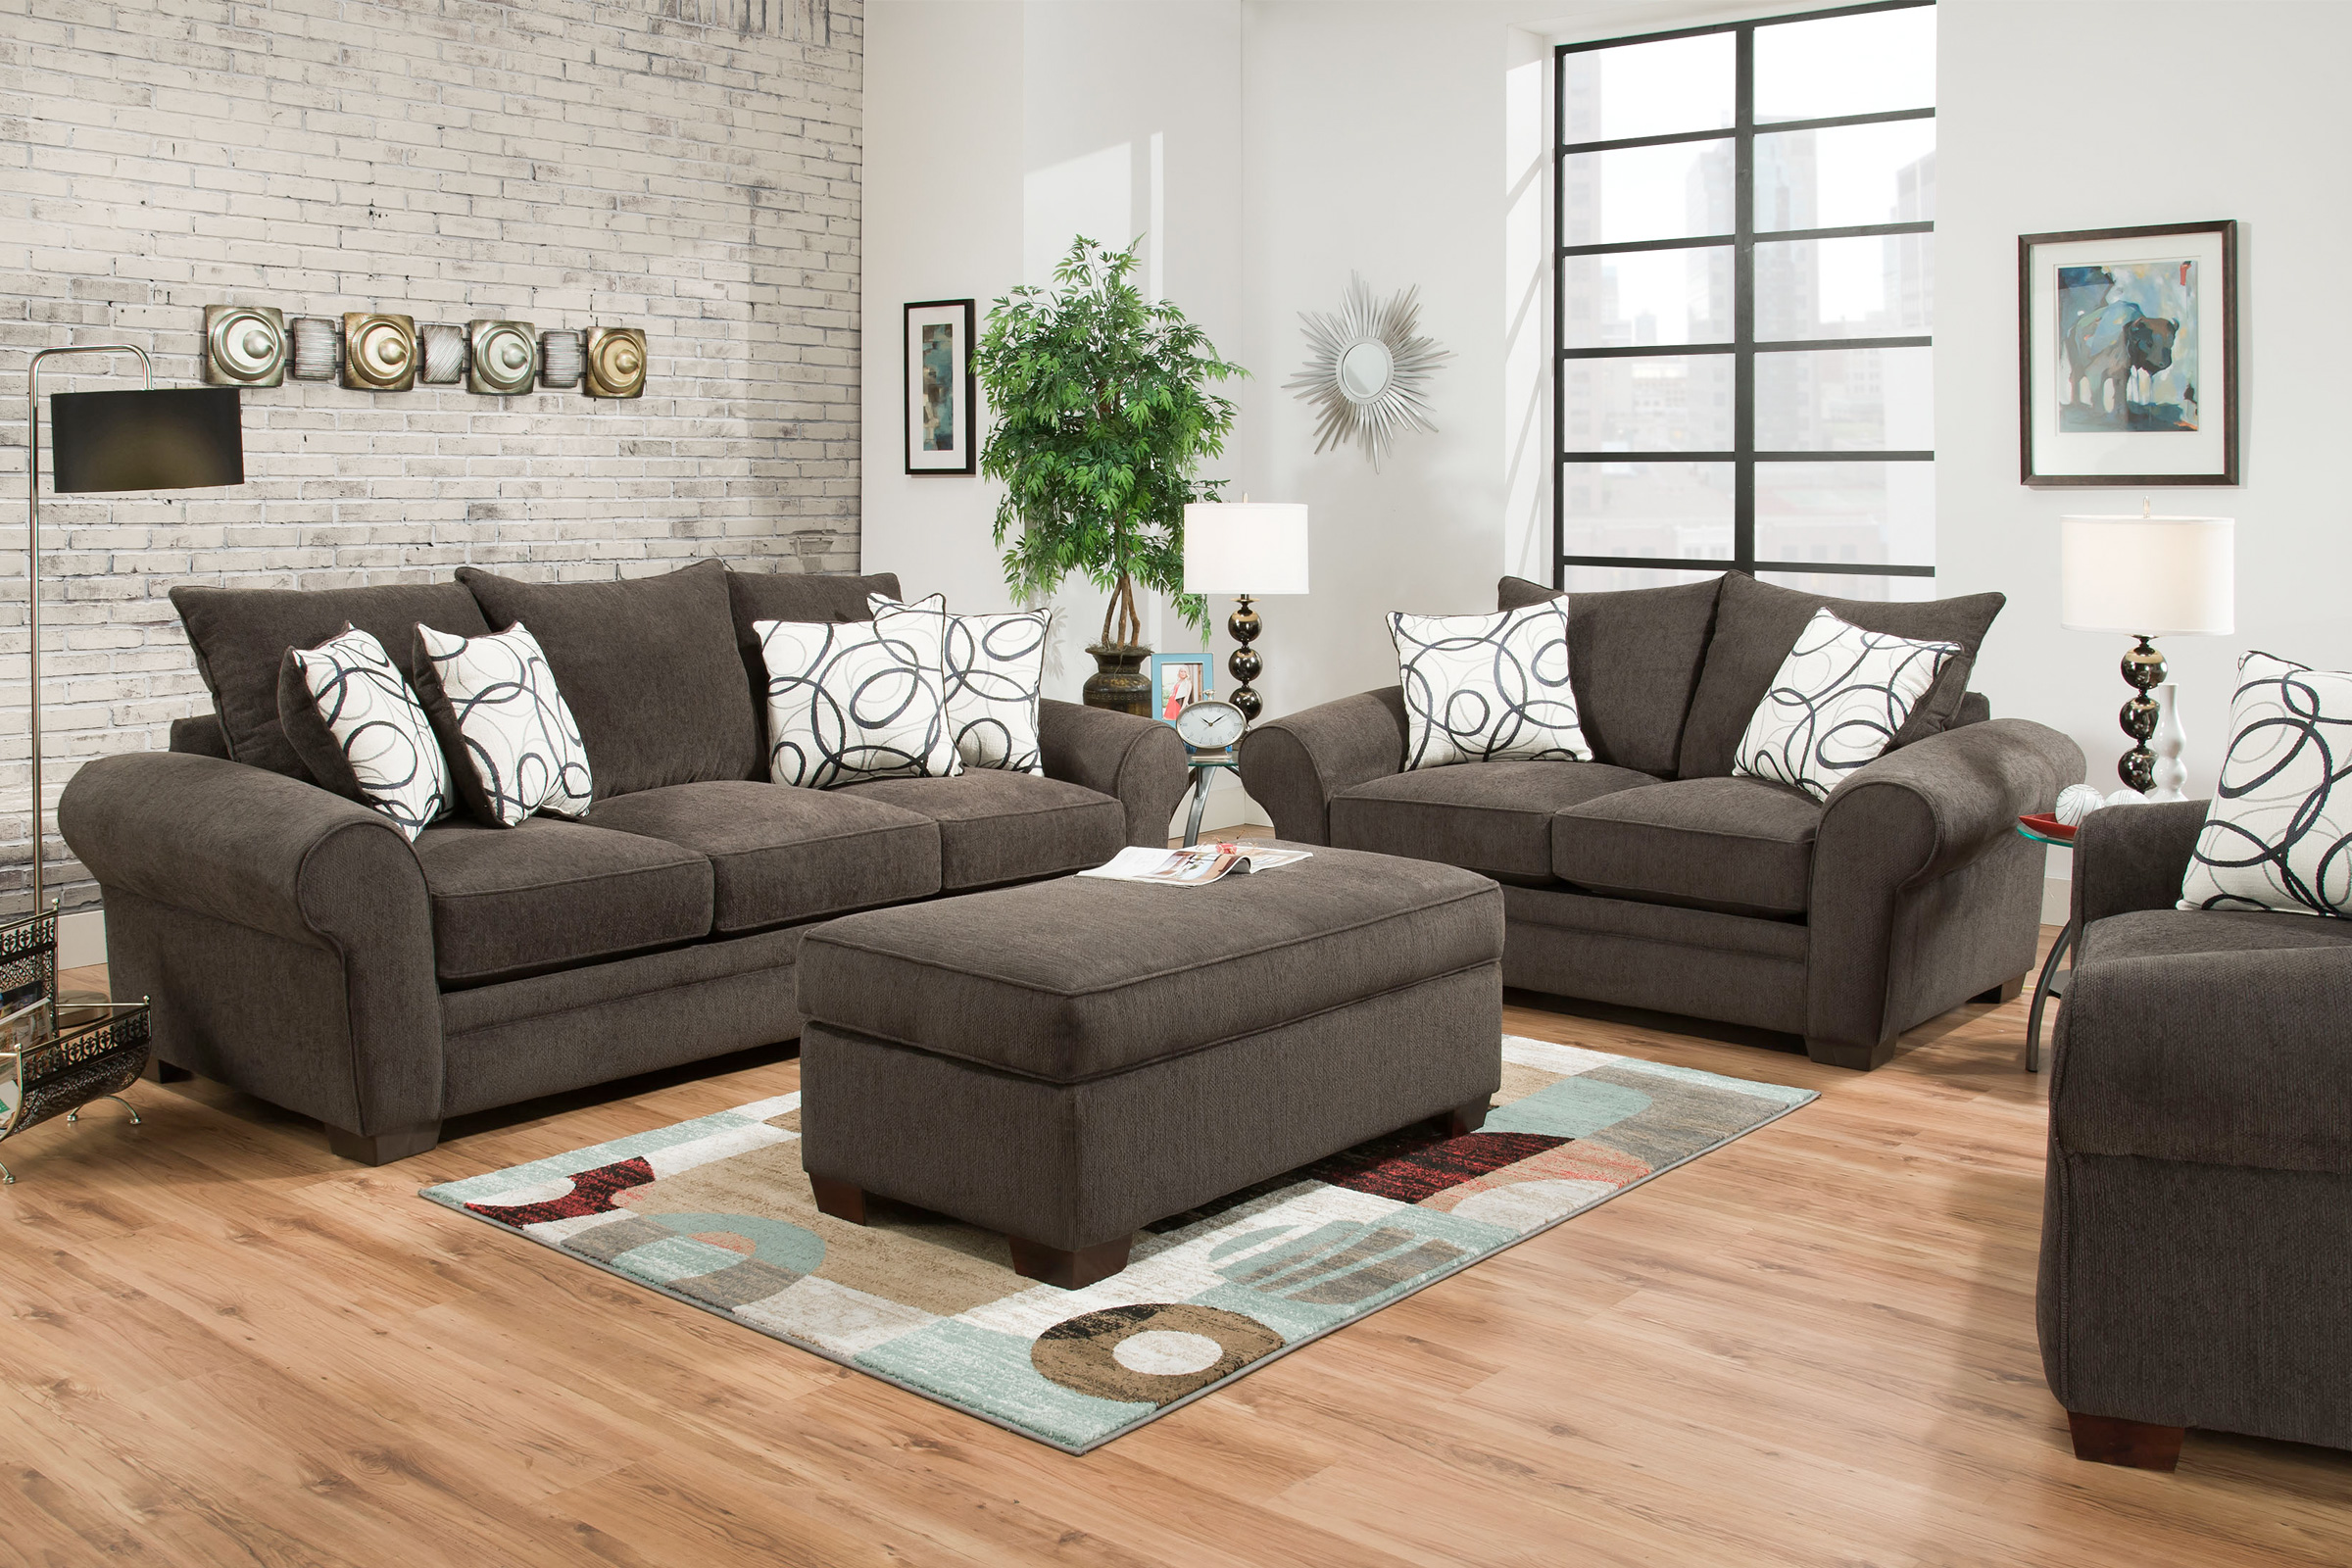 Sofa Dreams Outlet Othello Living Room Collection